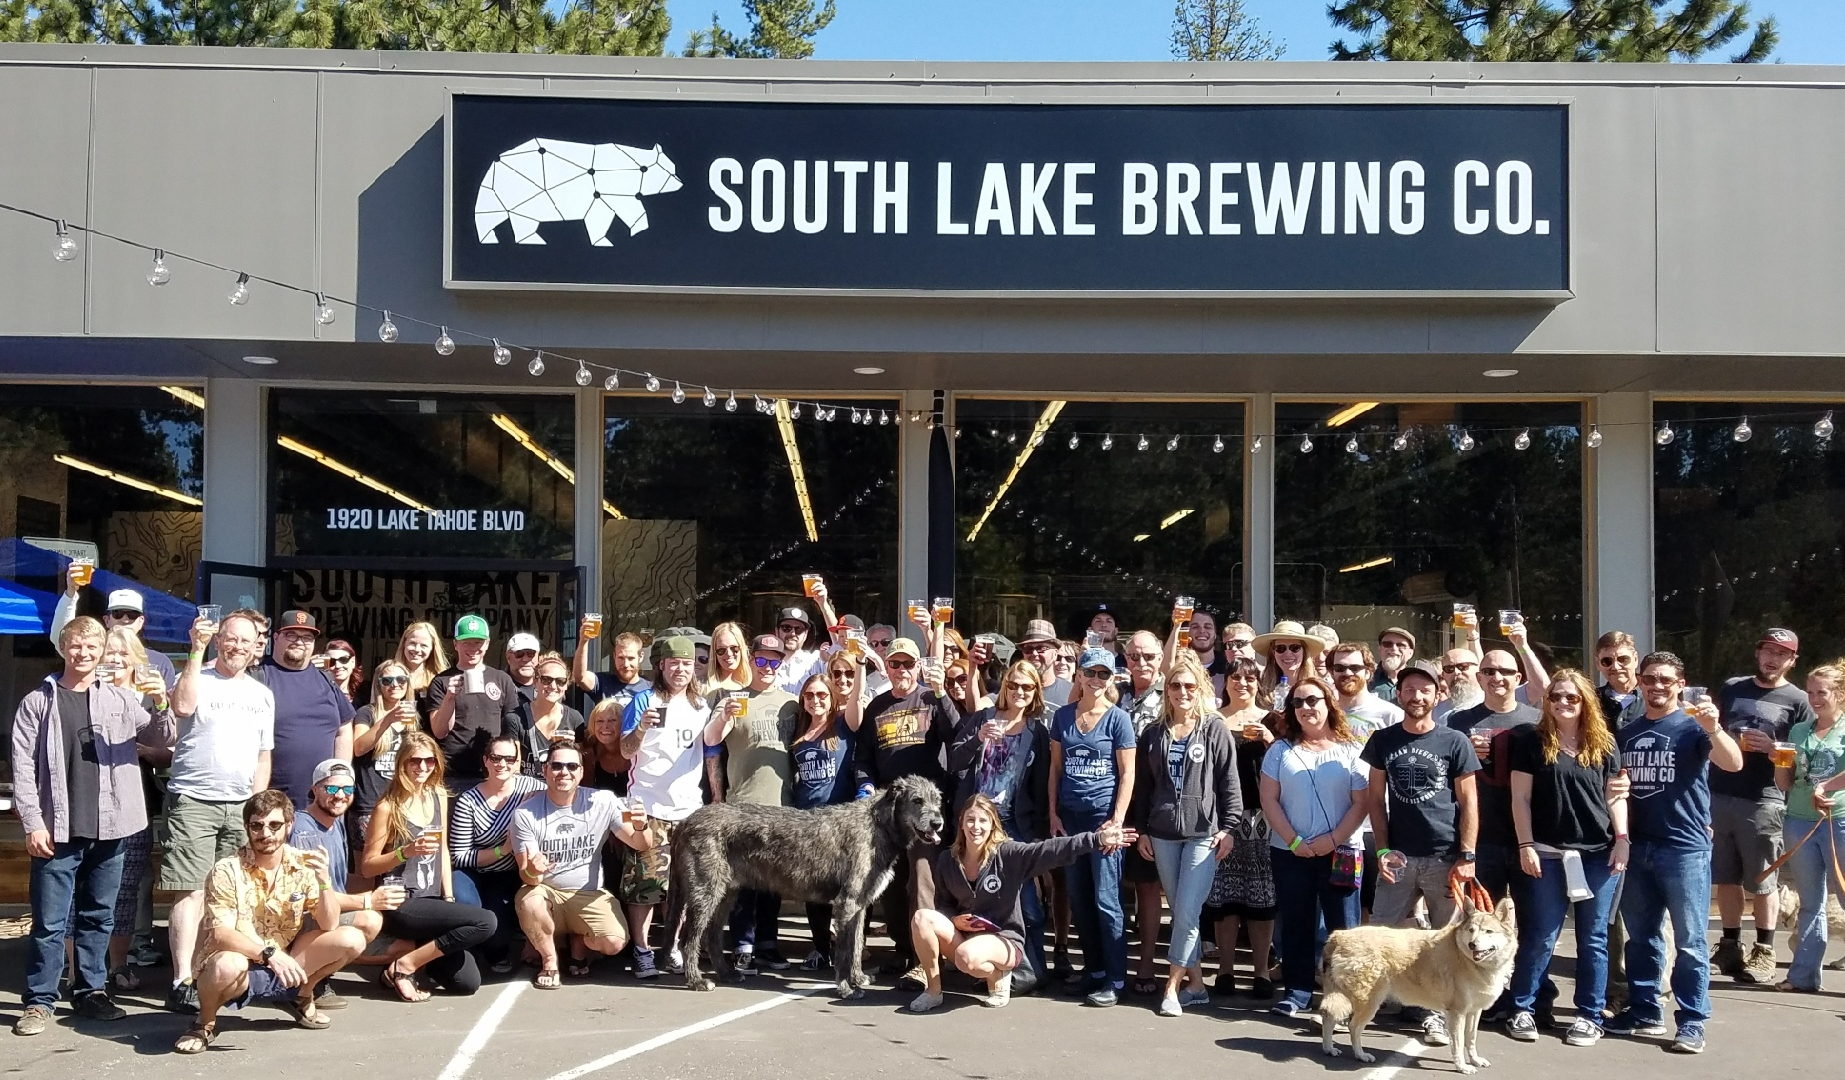 As the brewery becomes a year old, Chris and Nicole's passion for Lake Tahoe and craft beer remains strong and SLBC continues to grow into the community-focused tasting room and production brewery it was meant to be. It takes a village to raise a child - but it takes an entire community to create a brewery!! Chris and Nicole are forever grateful for their awesome staff, investors, family, and friends!